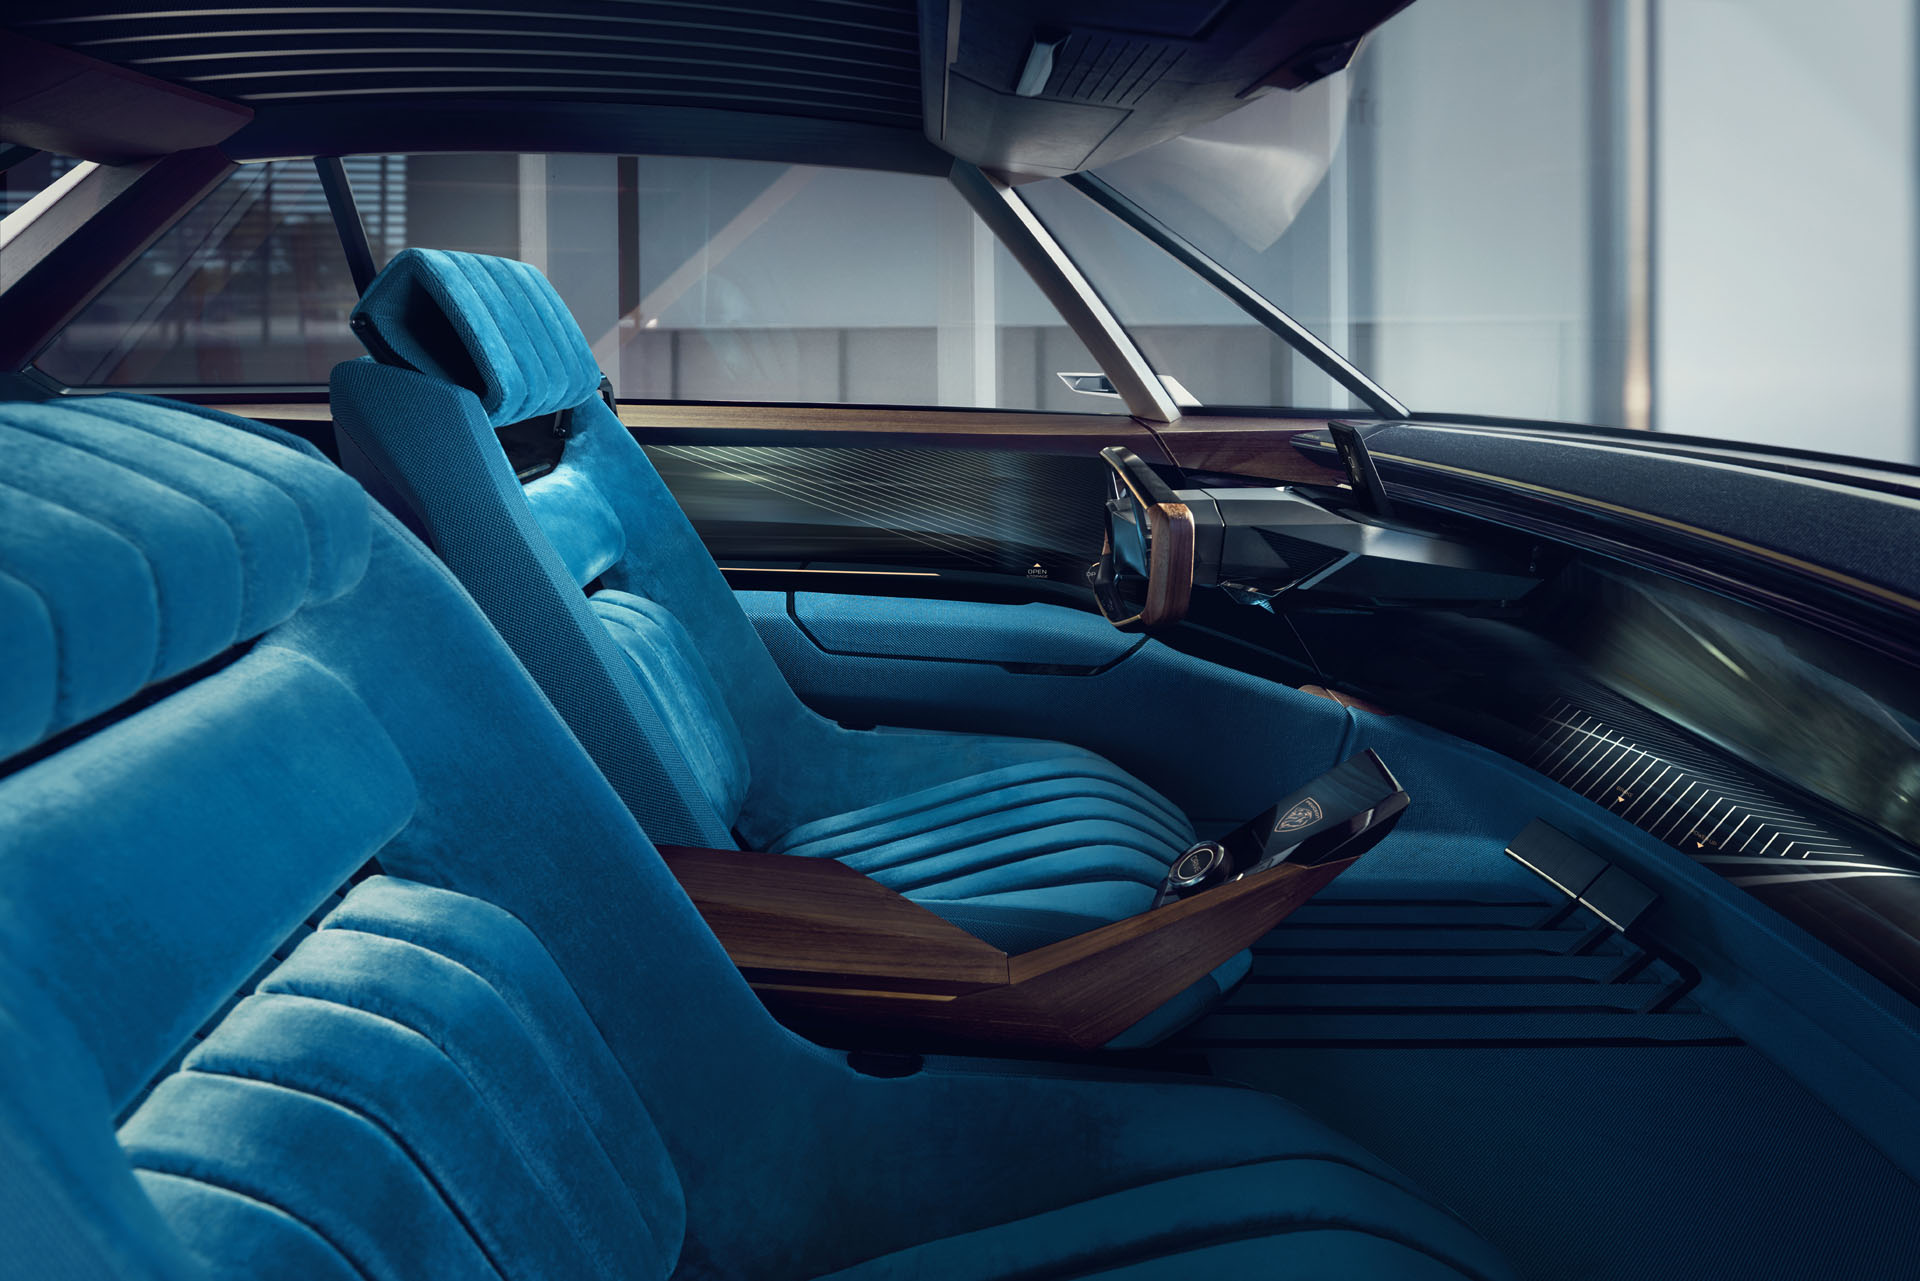 Garage Peugeot Dinan Peugeot E Legend Concept Takes Retro Design Into The Future In Paris